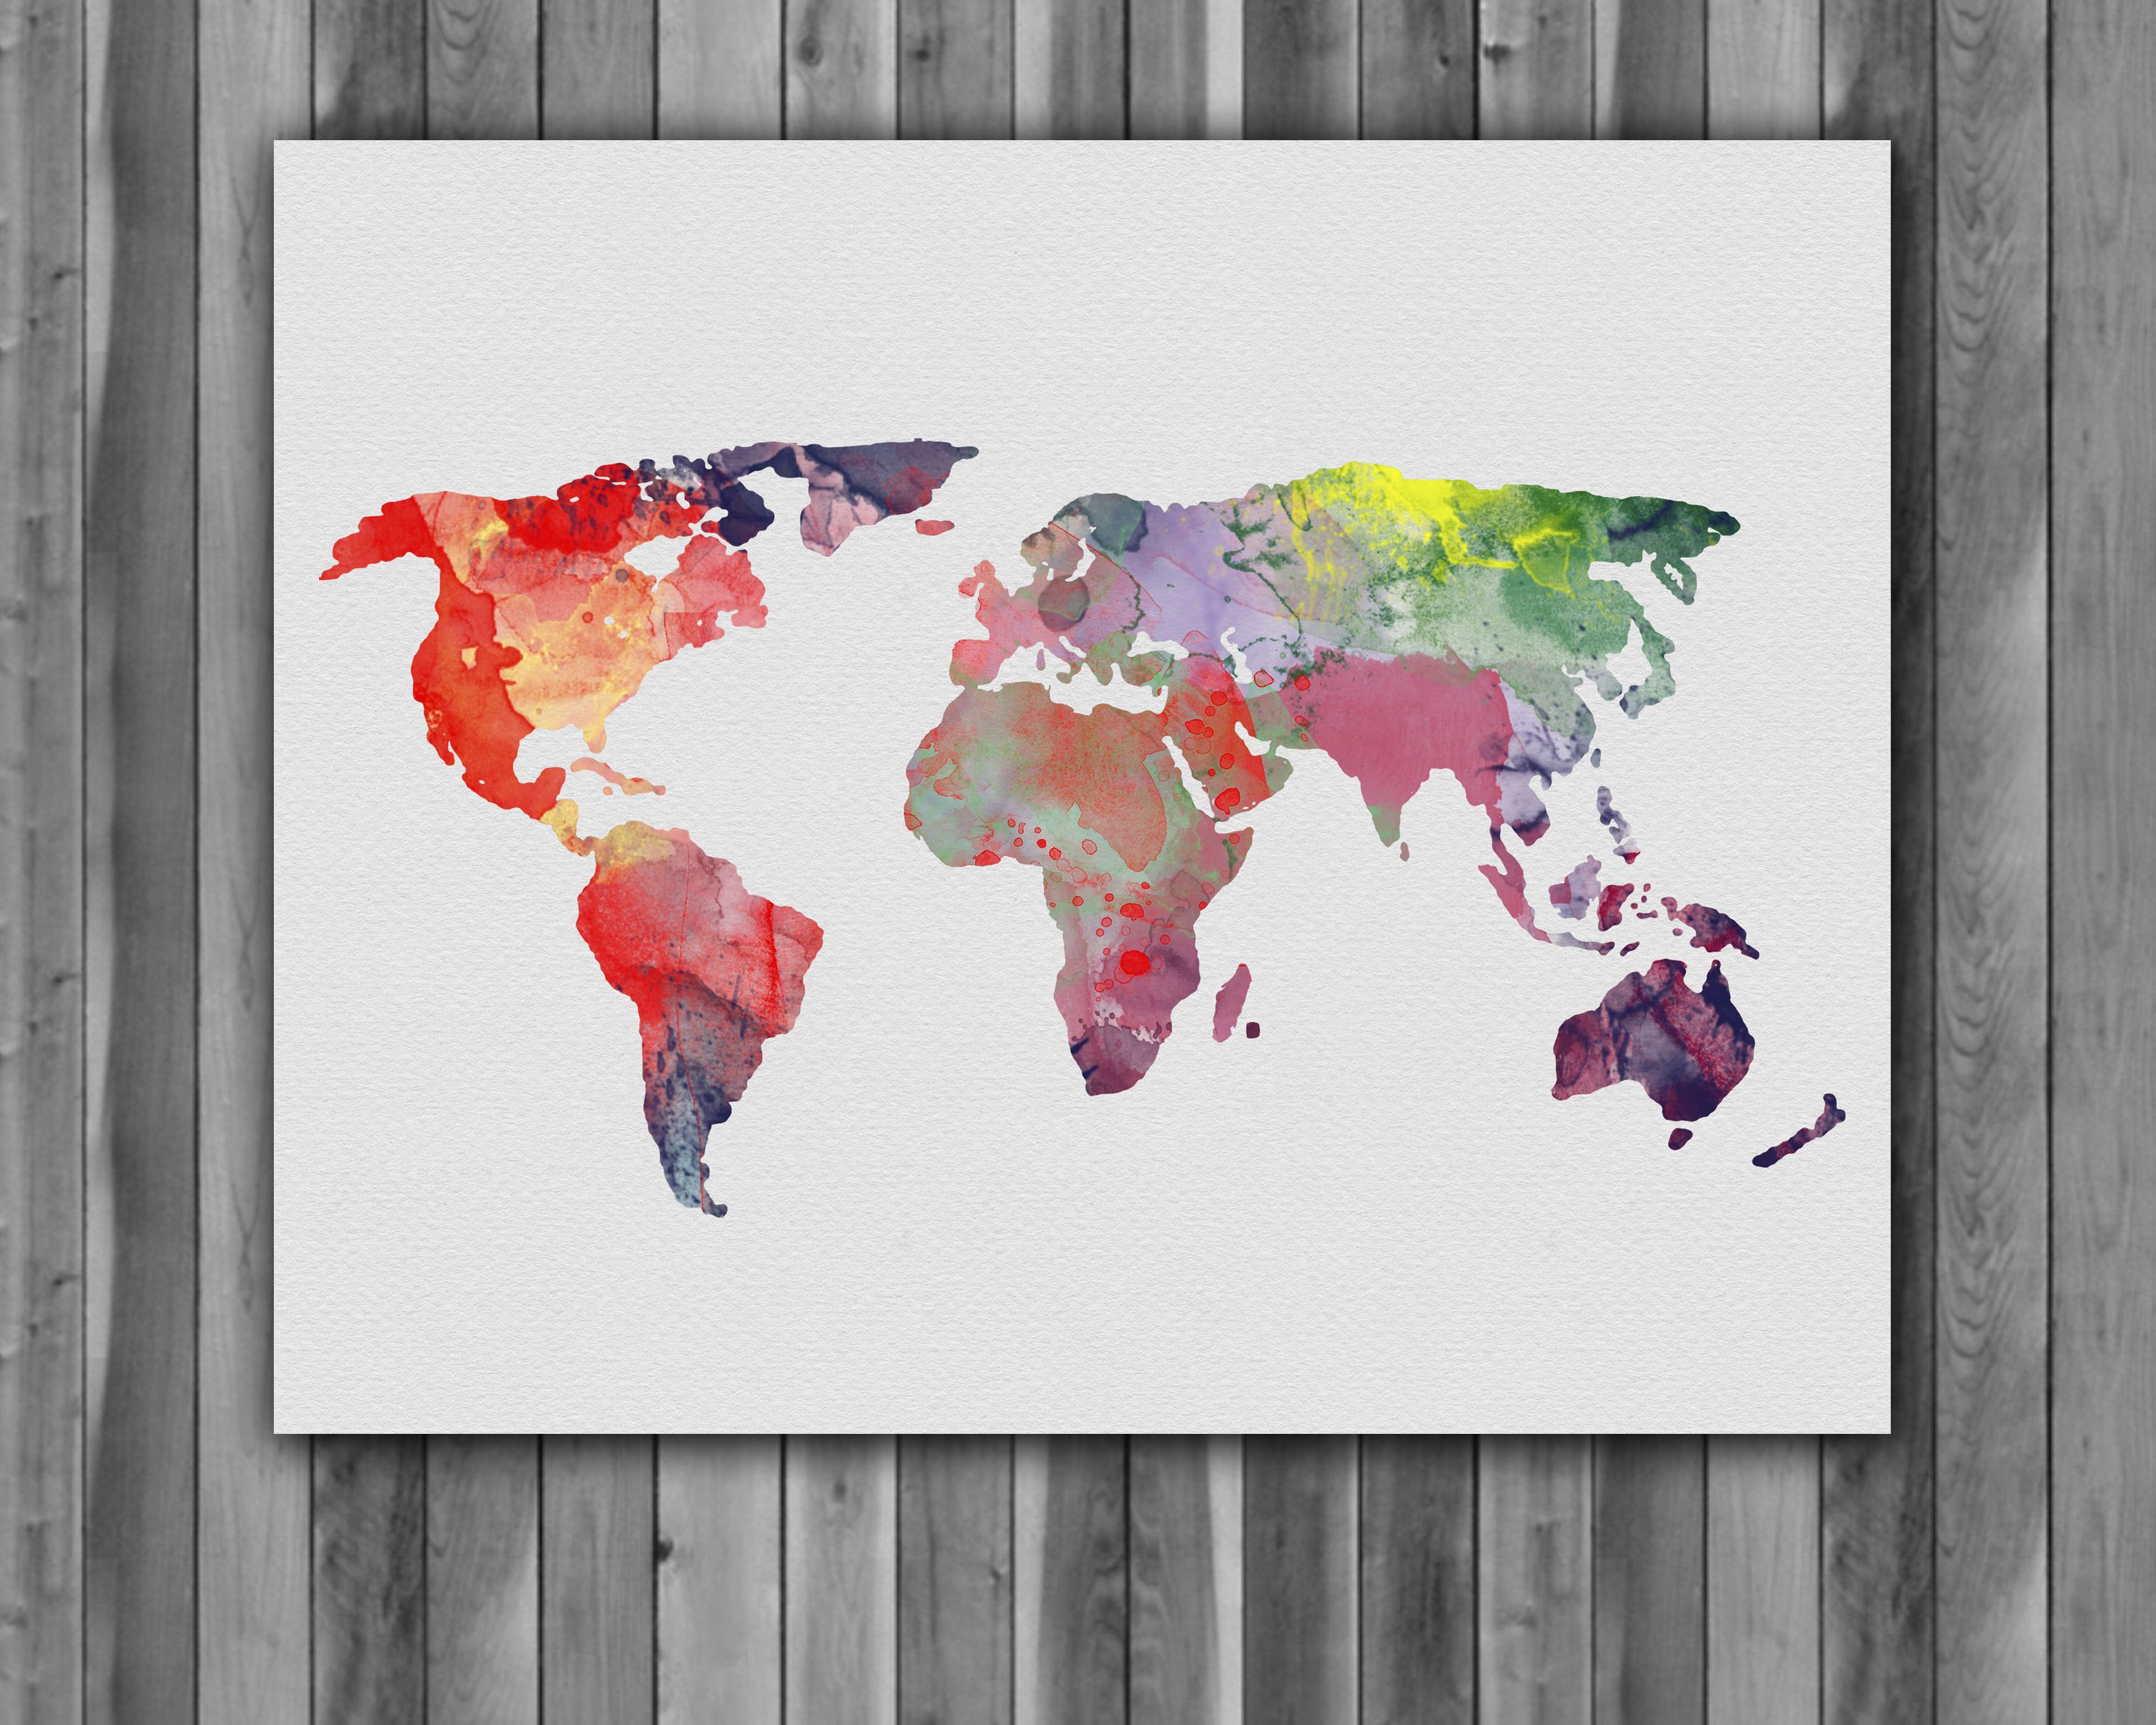 World map poster watercolor painting wall art print instant world map poster watercolor painting wall art print instant download home decor gumiabroncs Image collections